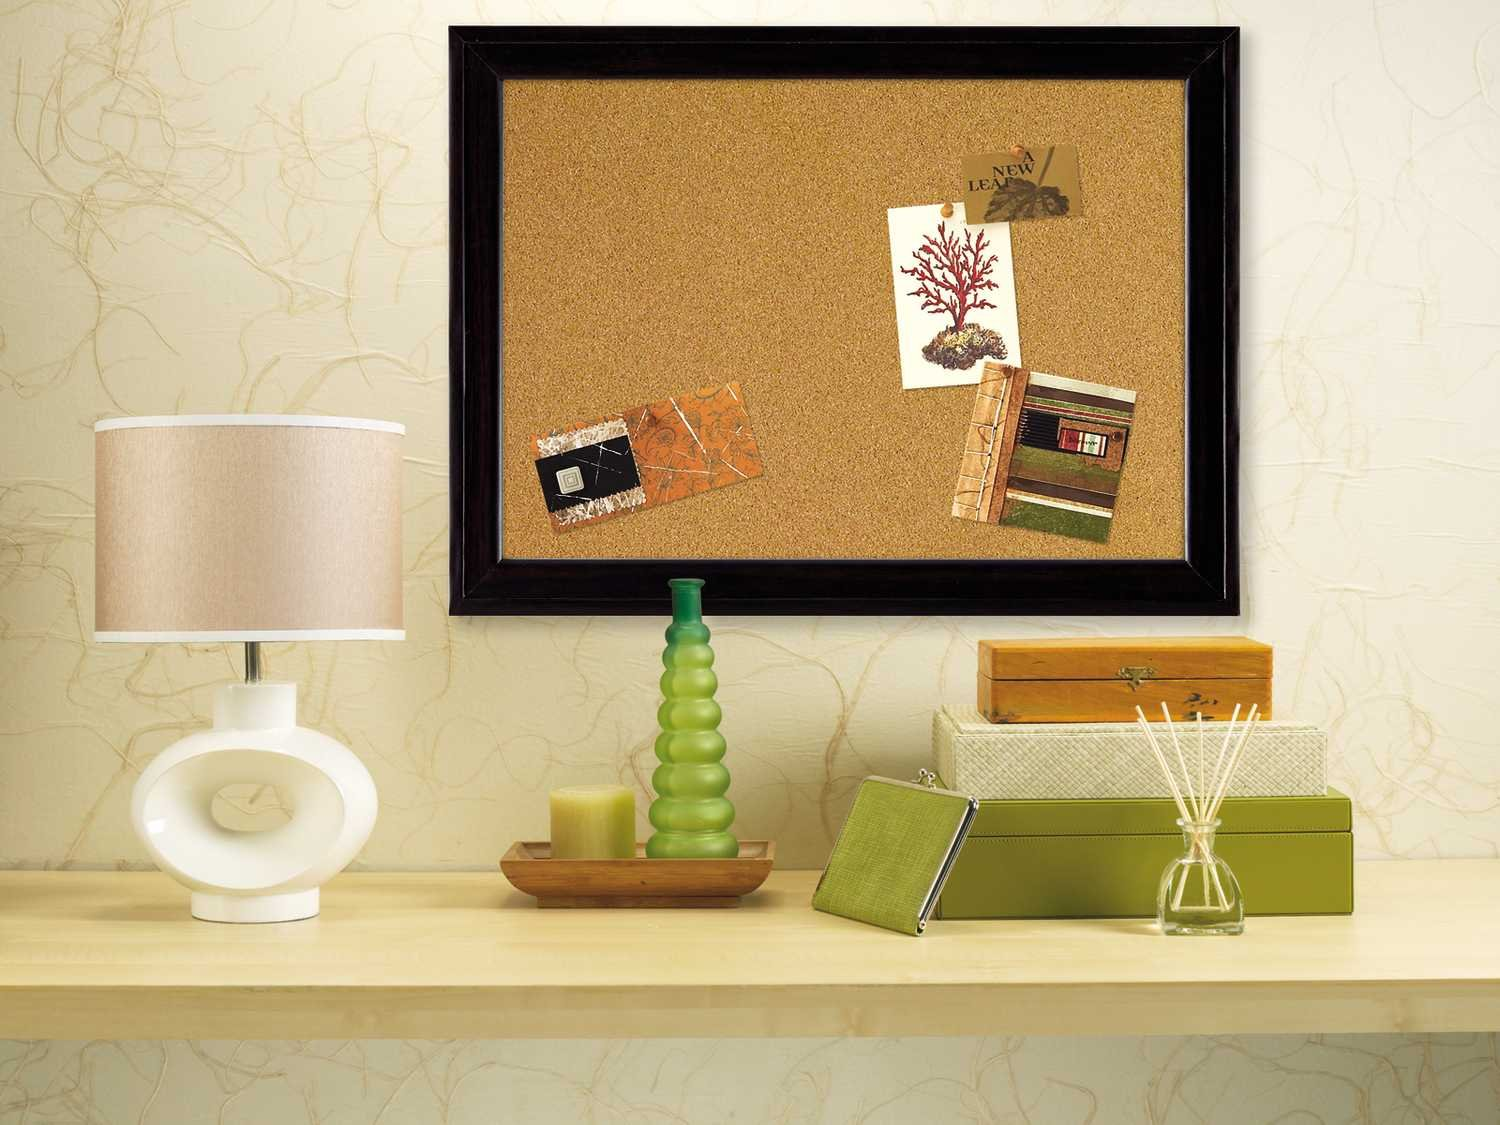 Amazon.com : Quartet Cork Bulletin Board, 11 x 17 Inches, Home Décor ...